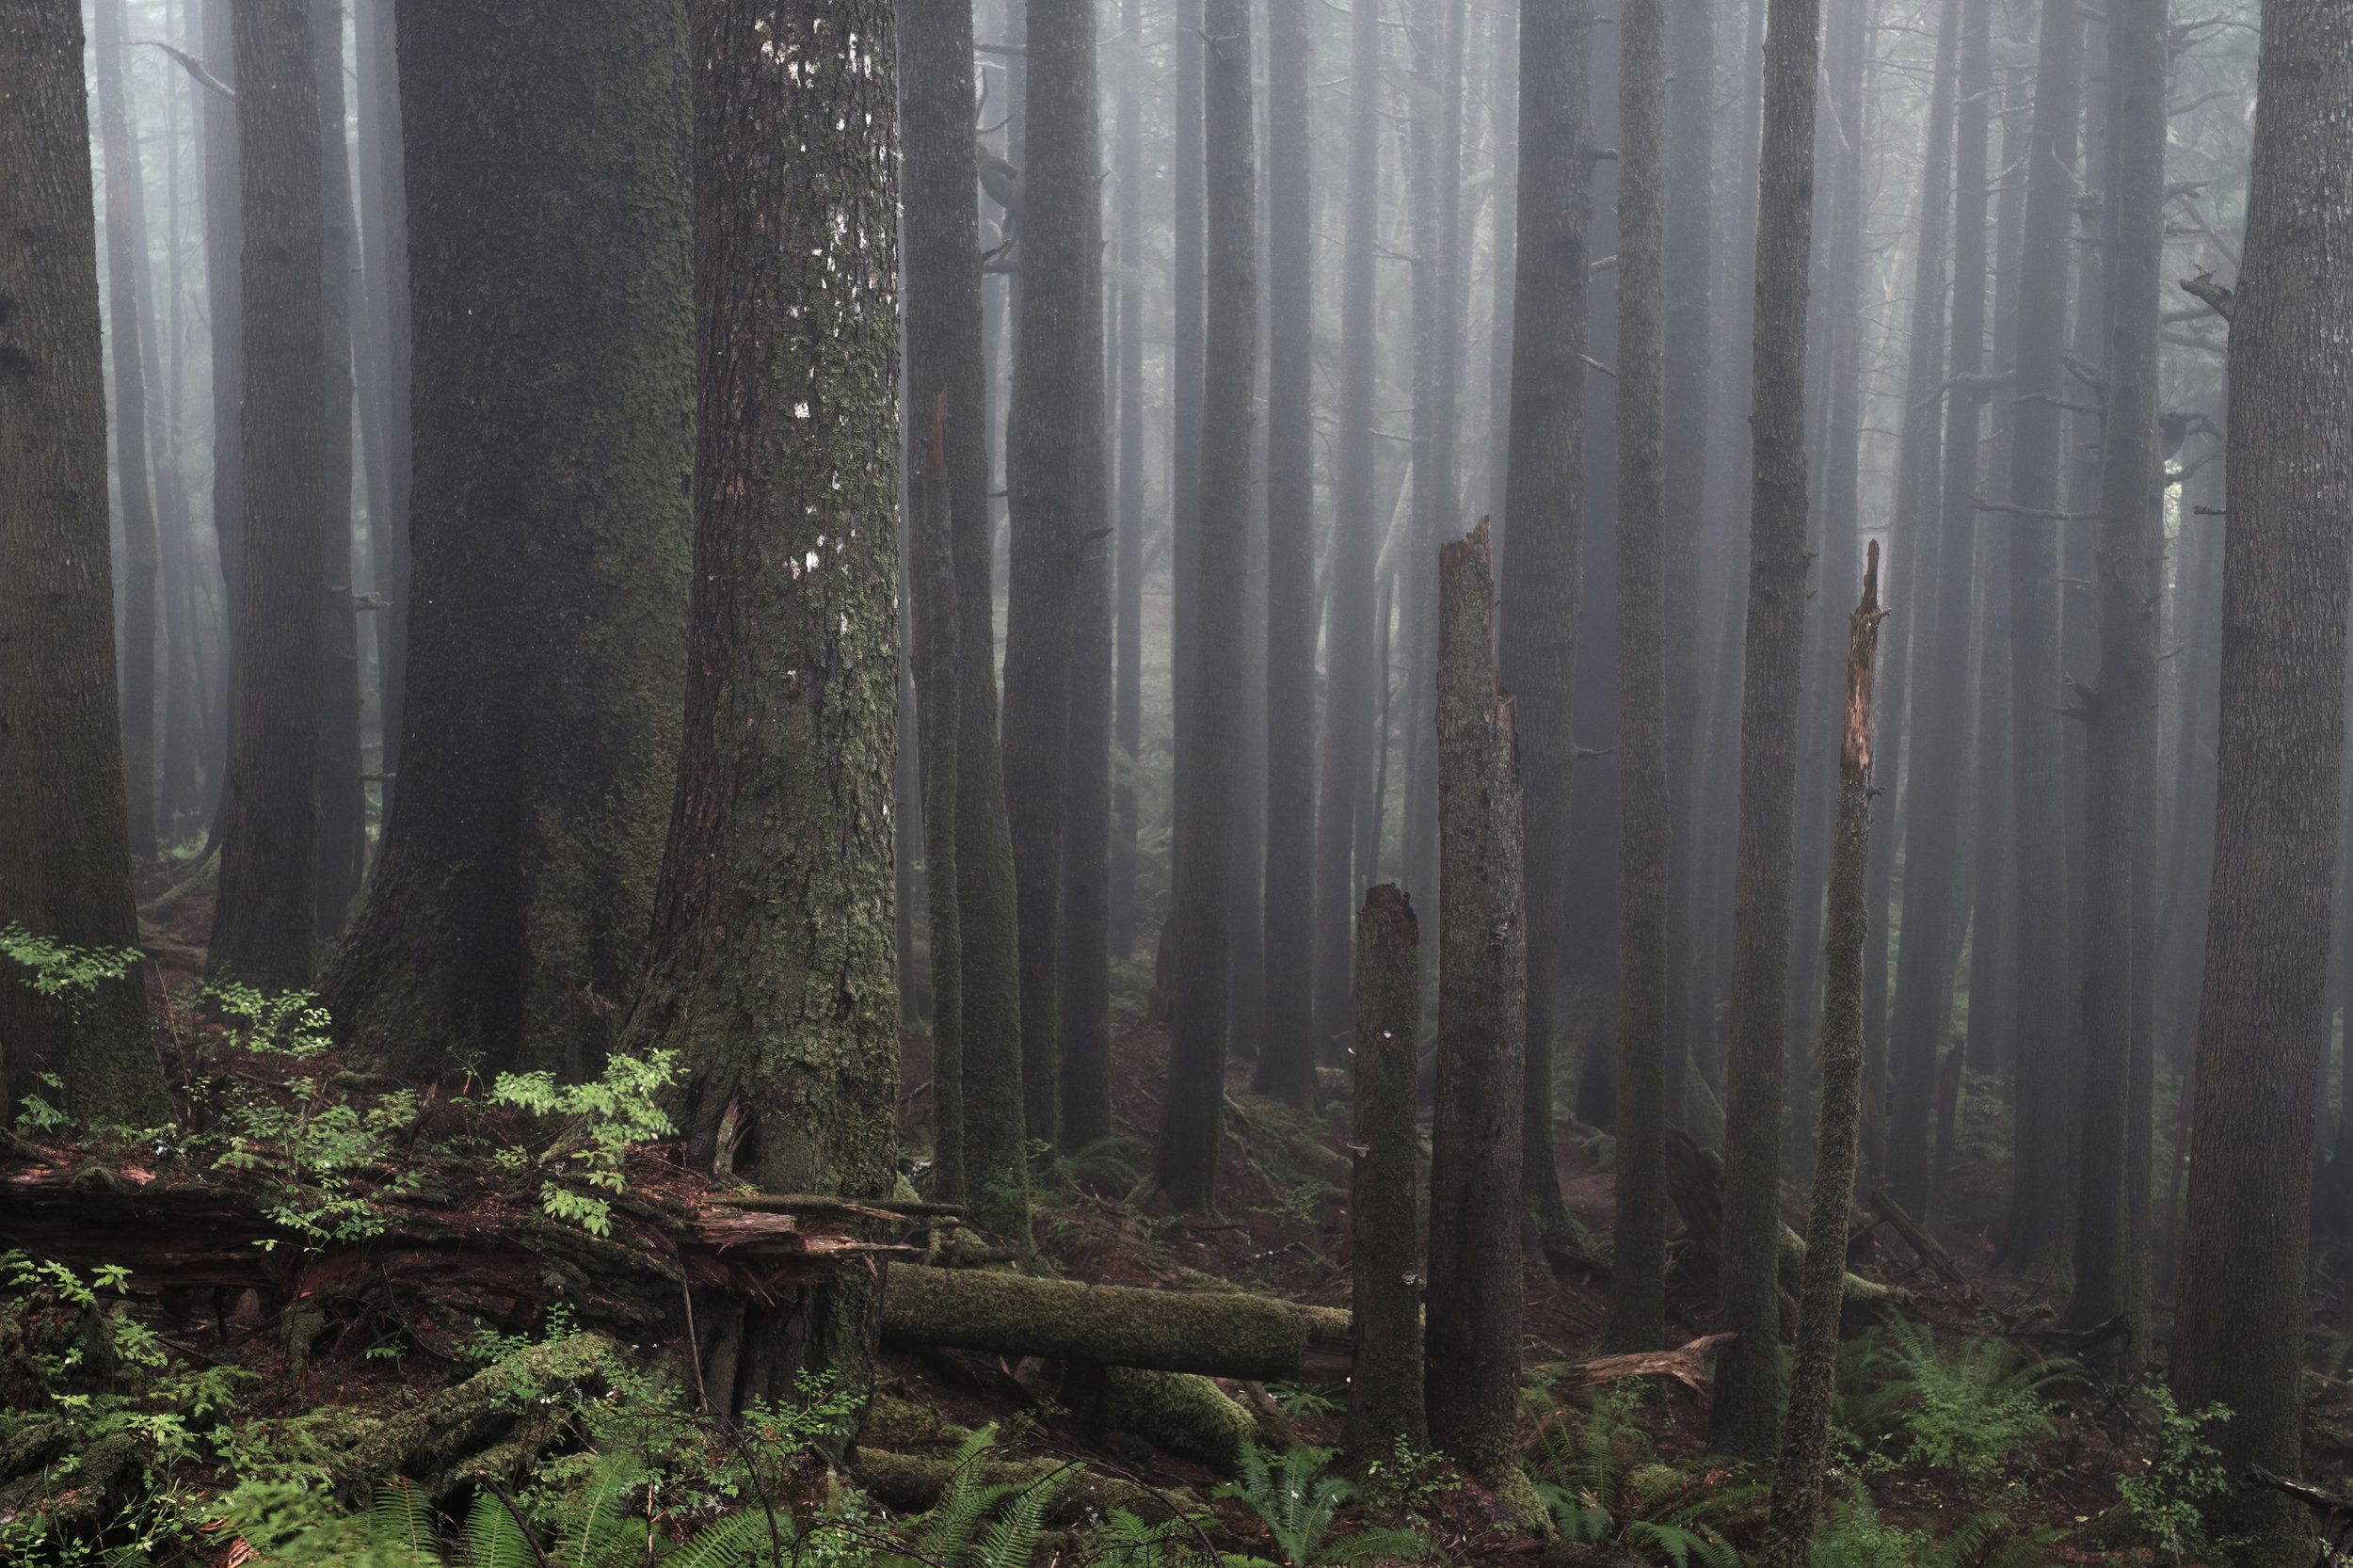 Foggy forest photo